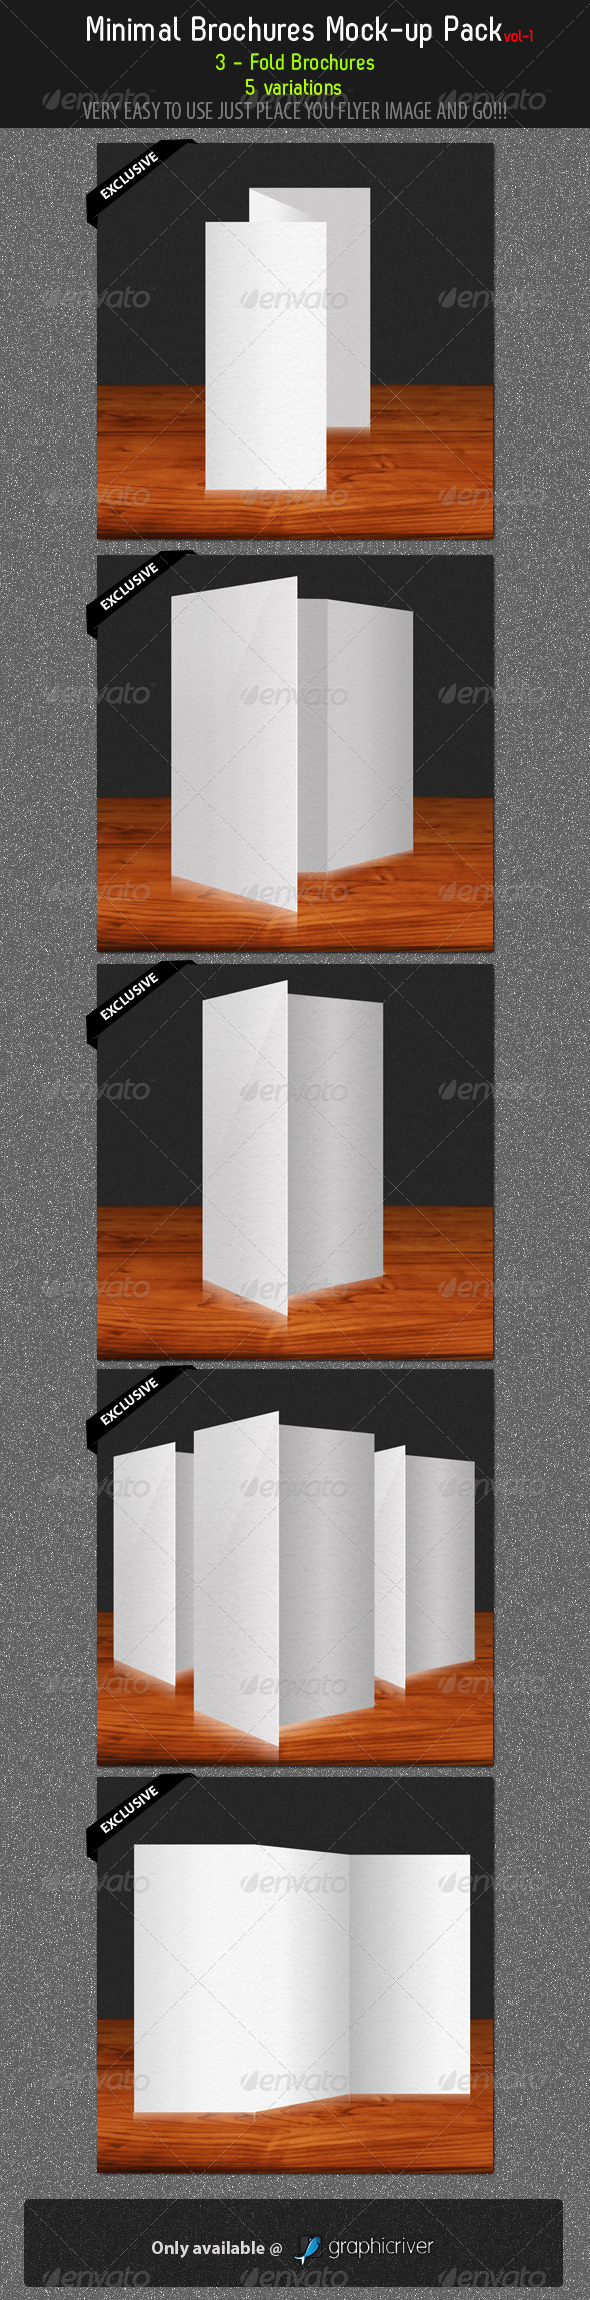 GraphicRiver Minimal Brochures Mock-up Pack 1 292245